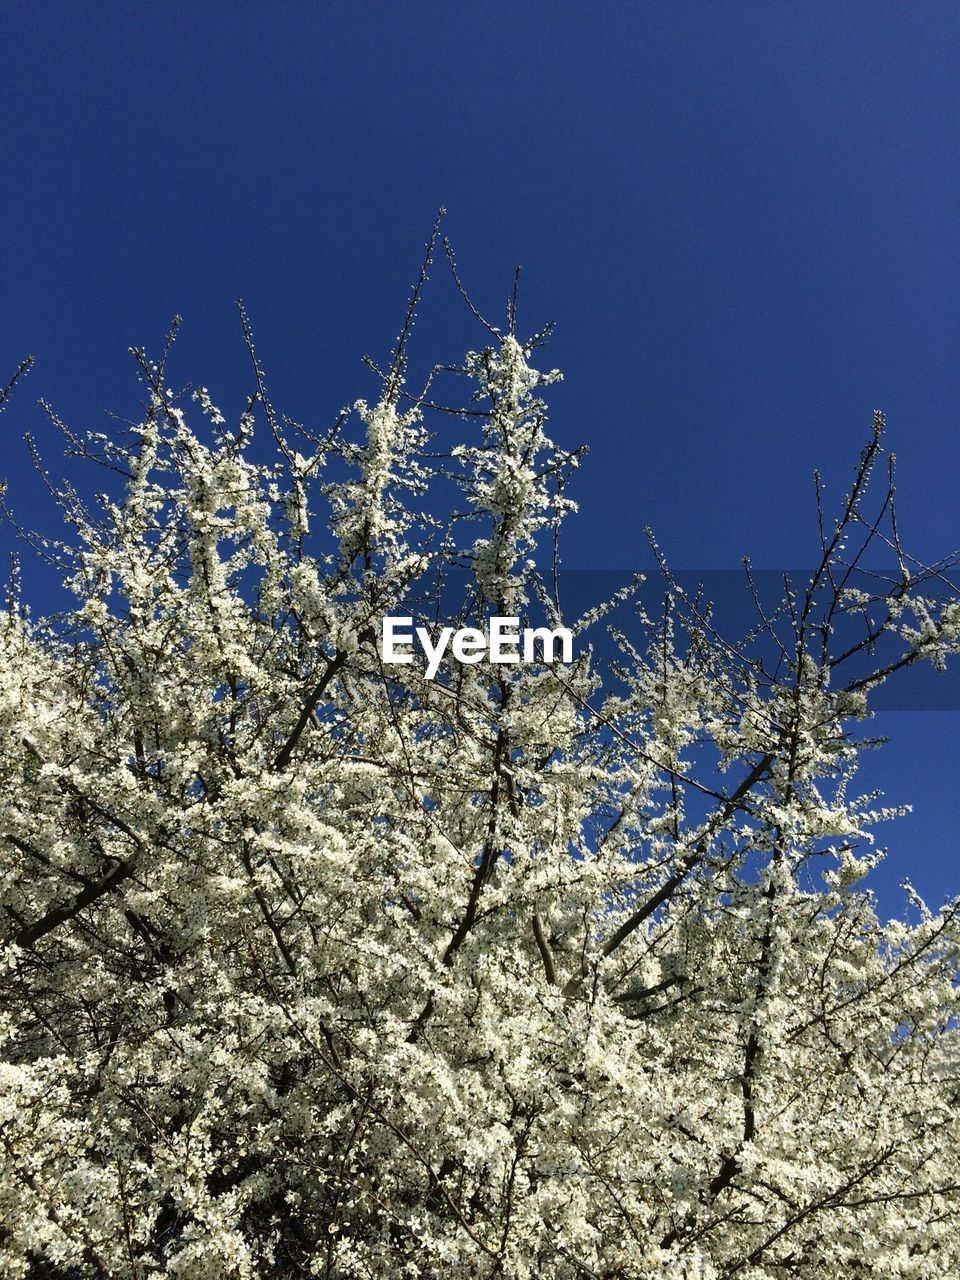 flower, growth, nature, low angle view, beauty in nature, no people, freshness, fragility, blue, clear sky, blossom, springtime, day, outdoors, plant, tree, branch, close-up, sky